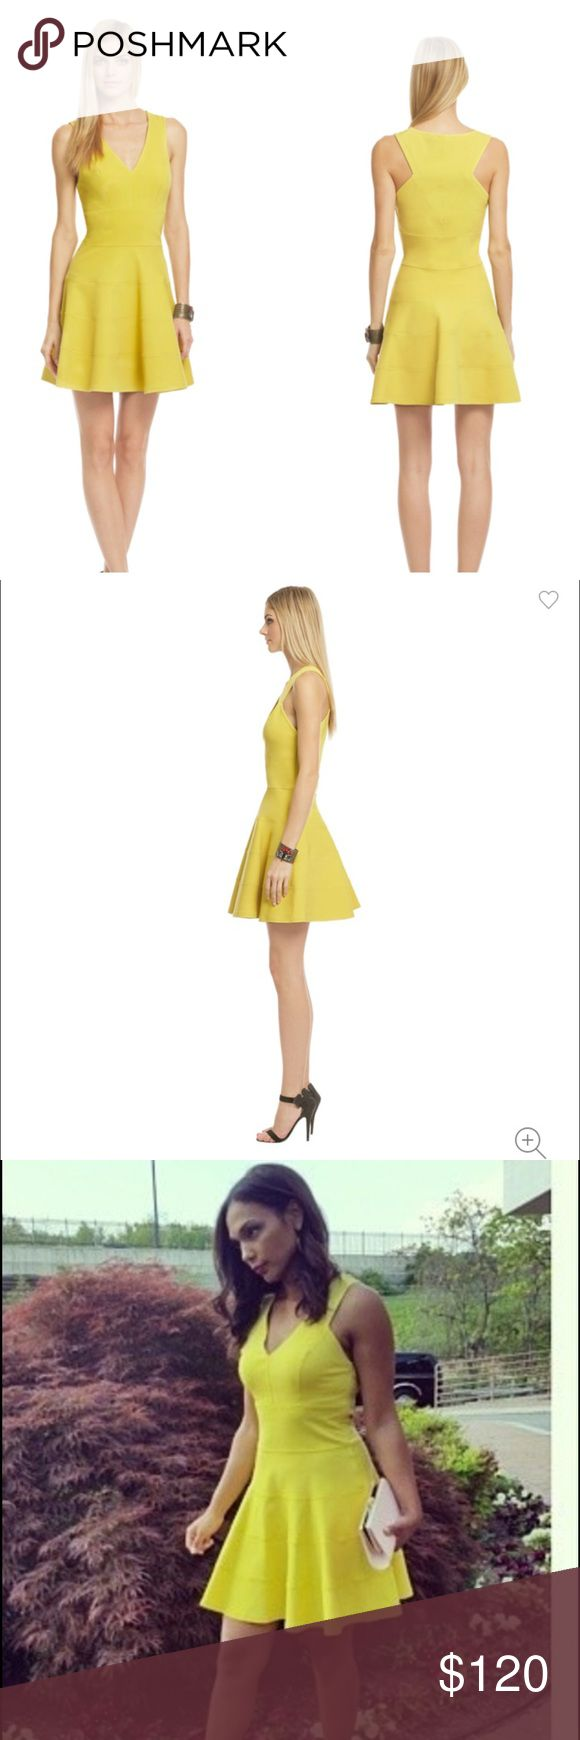 """ROBERTO RODRIGUEZ SOUR LEMONADE BANDAGE DRESS Sour Lemonade dress. Worn twice . Look lovely in lemon for your upcoming wedding event in this dress by Robert Rodriguez . The flared skirt and v neckline make this a flattering for for everyone. Pair with bold accessories for a truly memorable look. True to size . Fabric very stretchy. Model on 2-nd picture is 5""""10 tall. Circle skirt. Dry clean. Robert Rodriguez Dresses Midi"""